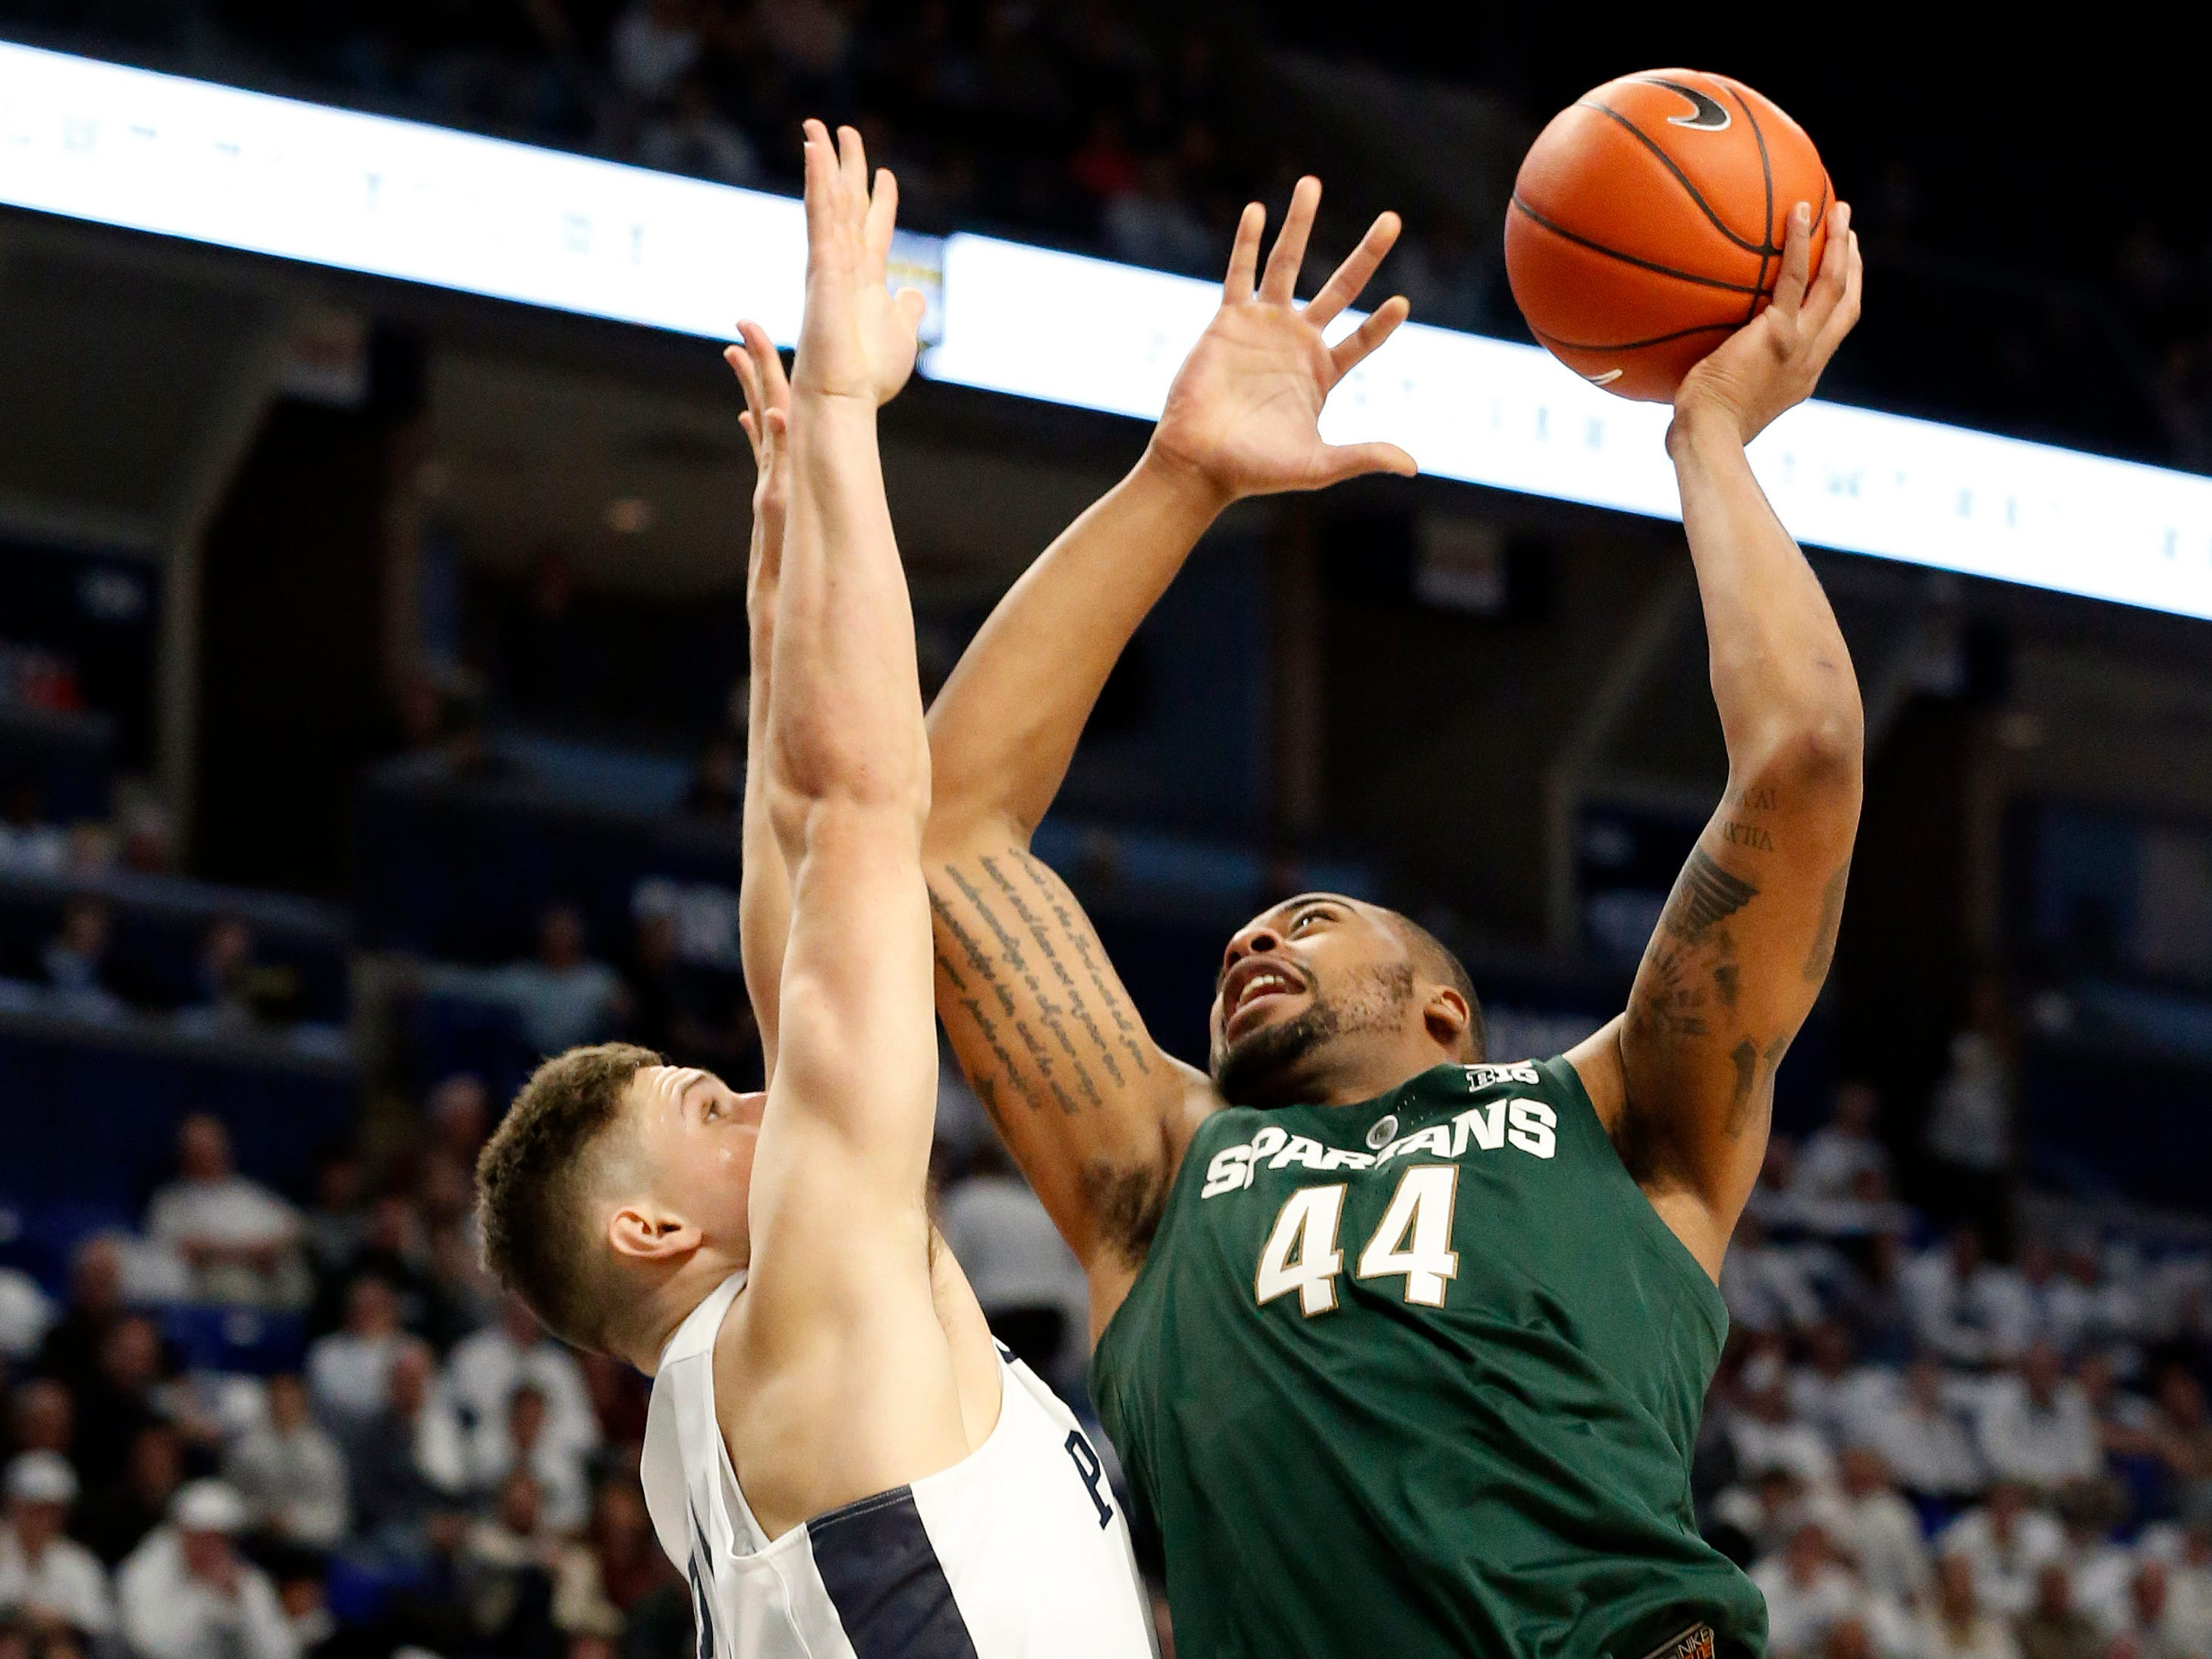 Michigan State's Nick Ward (44) shoots against Penn State's John Harrar (21) during first-half action.